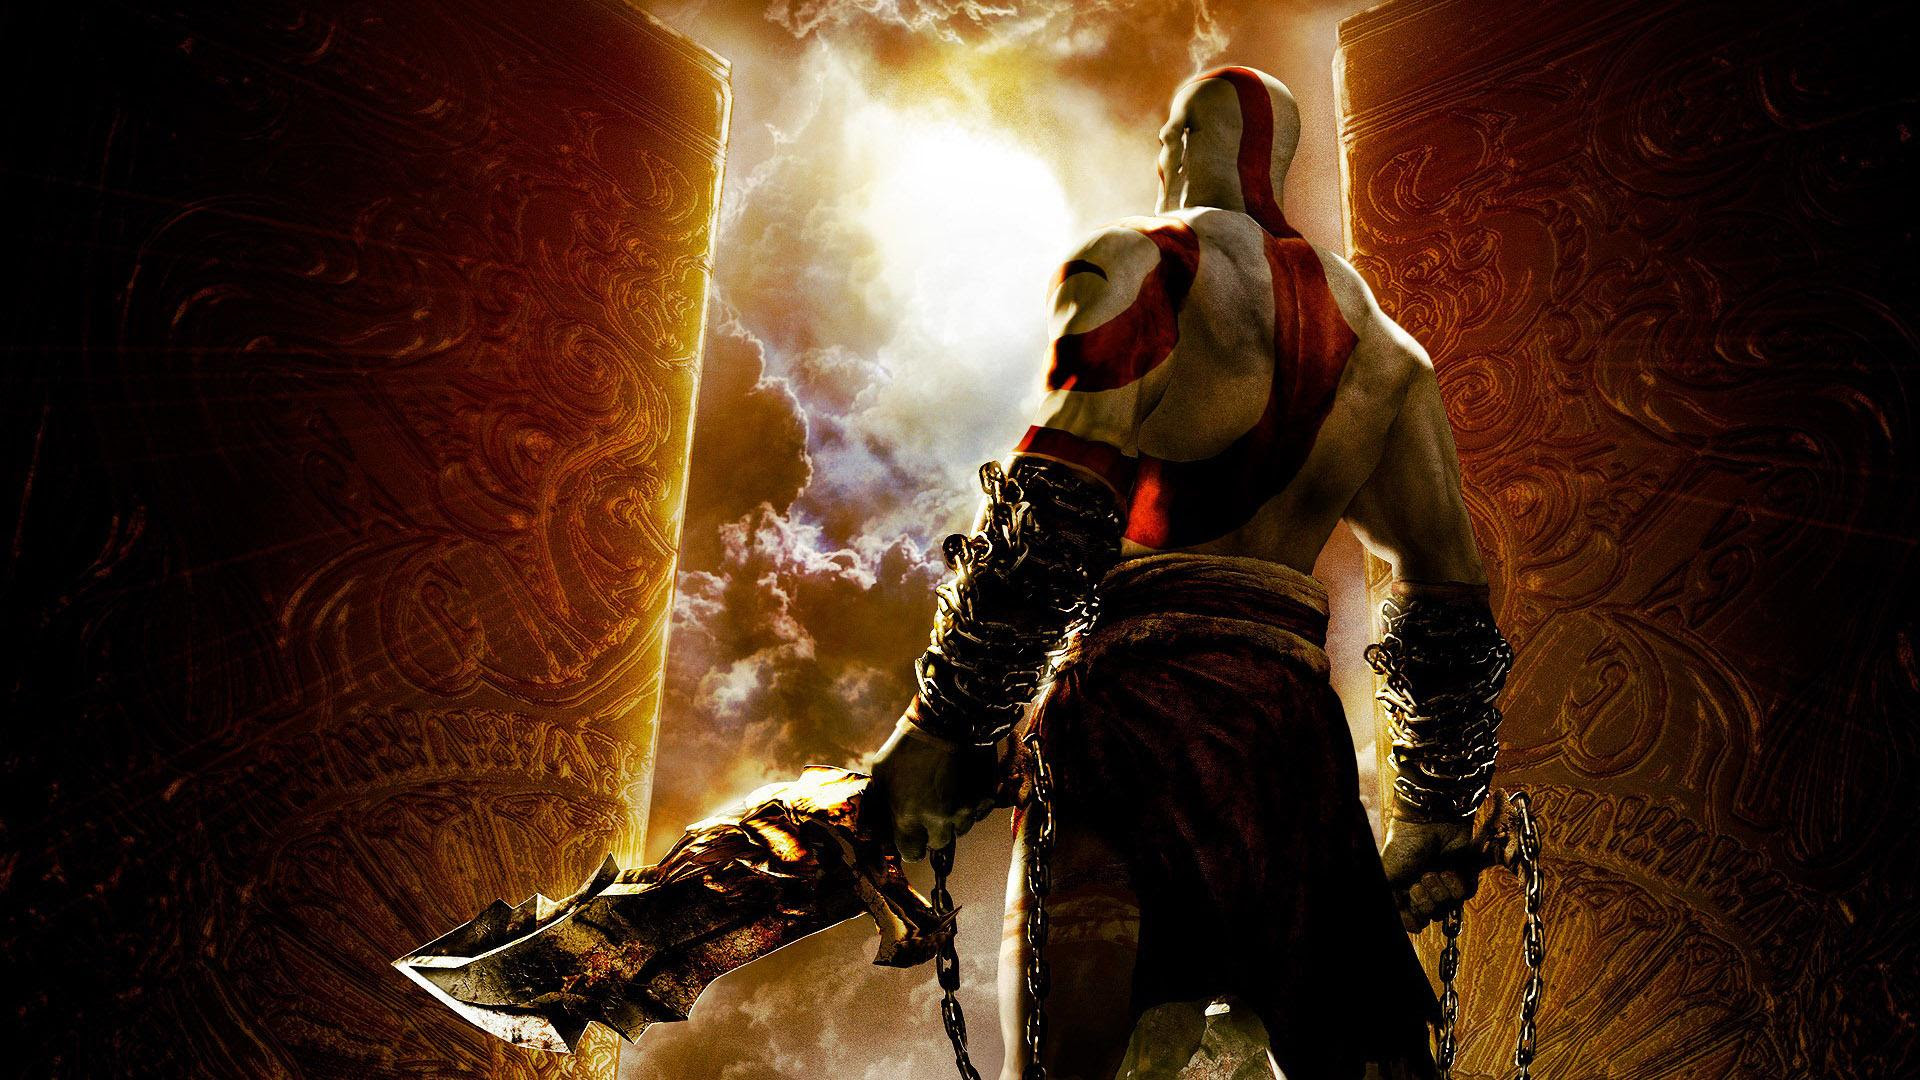 Hd Kratos Looking At The Sky God Of War Wallpaper Download